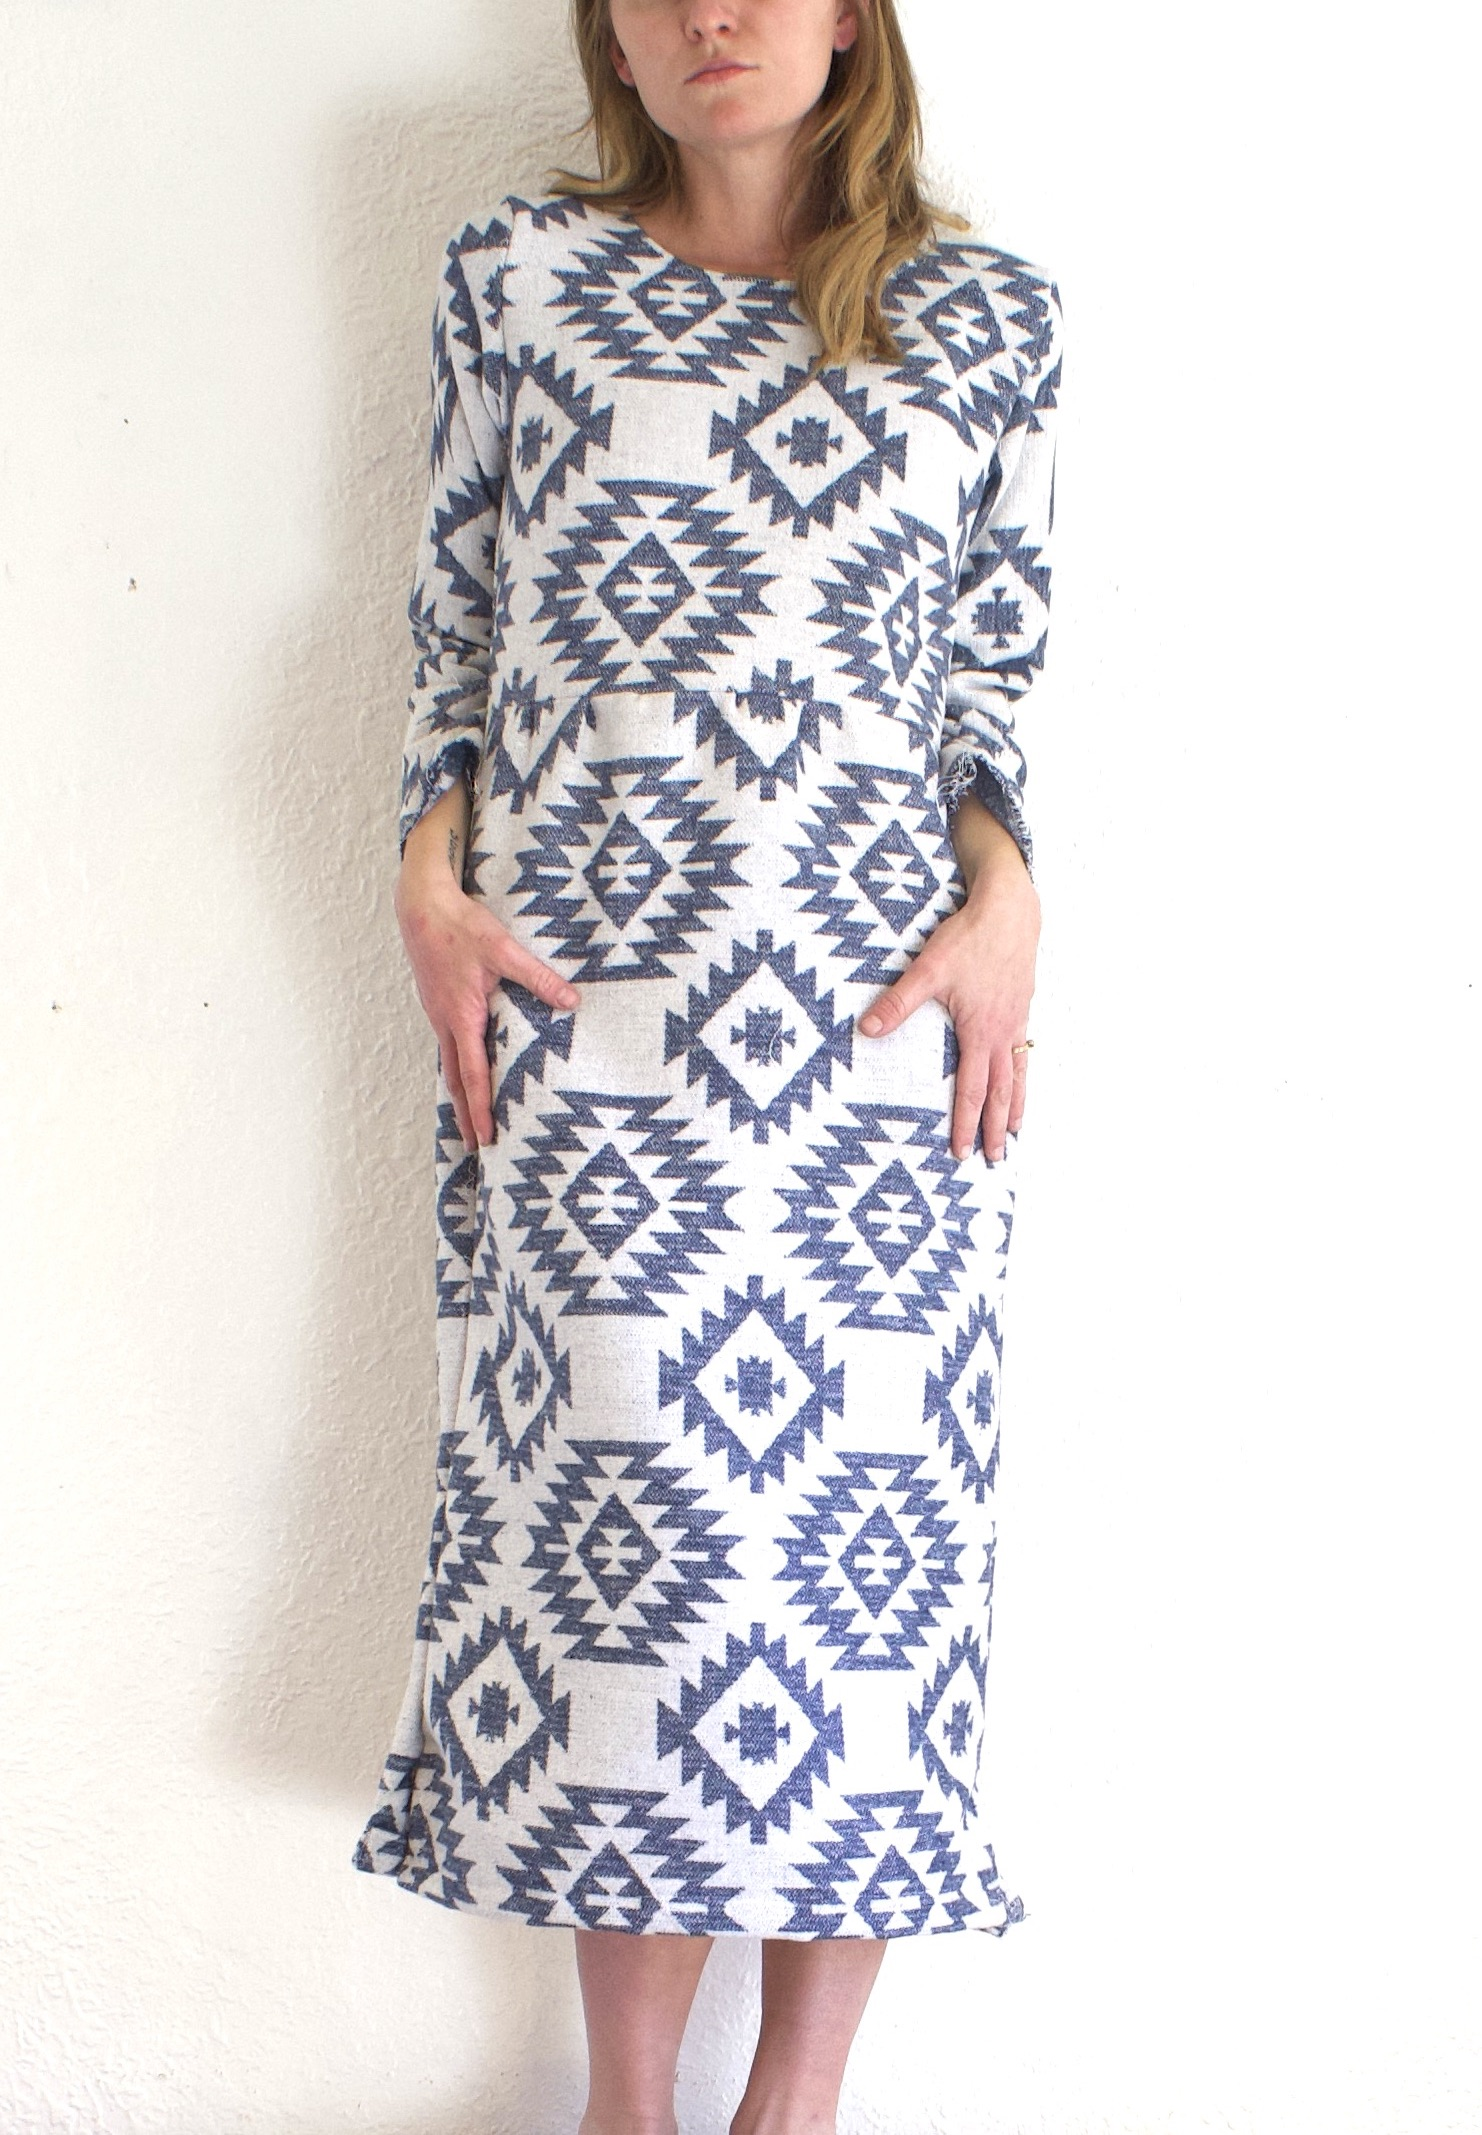 Patterned Flannel Dress - $98  + 40% off!